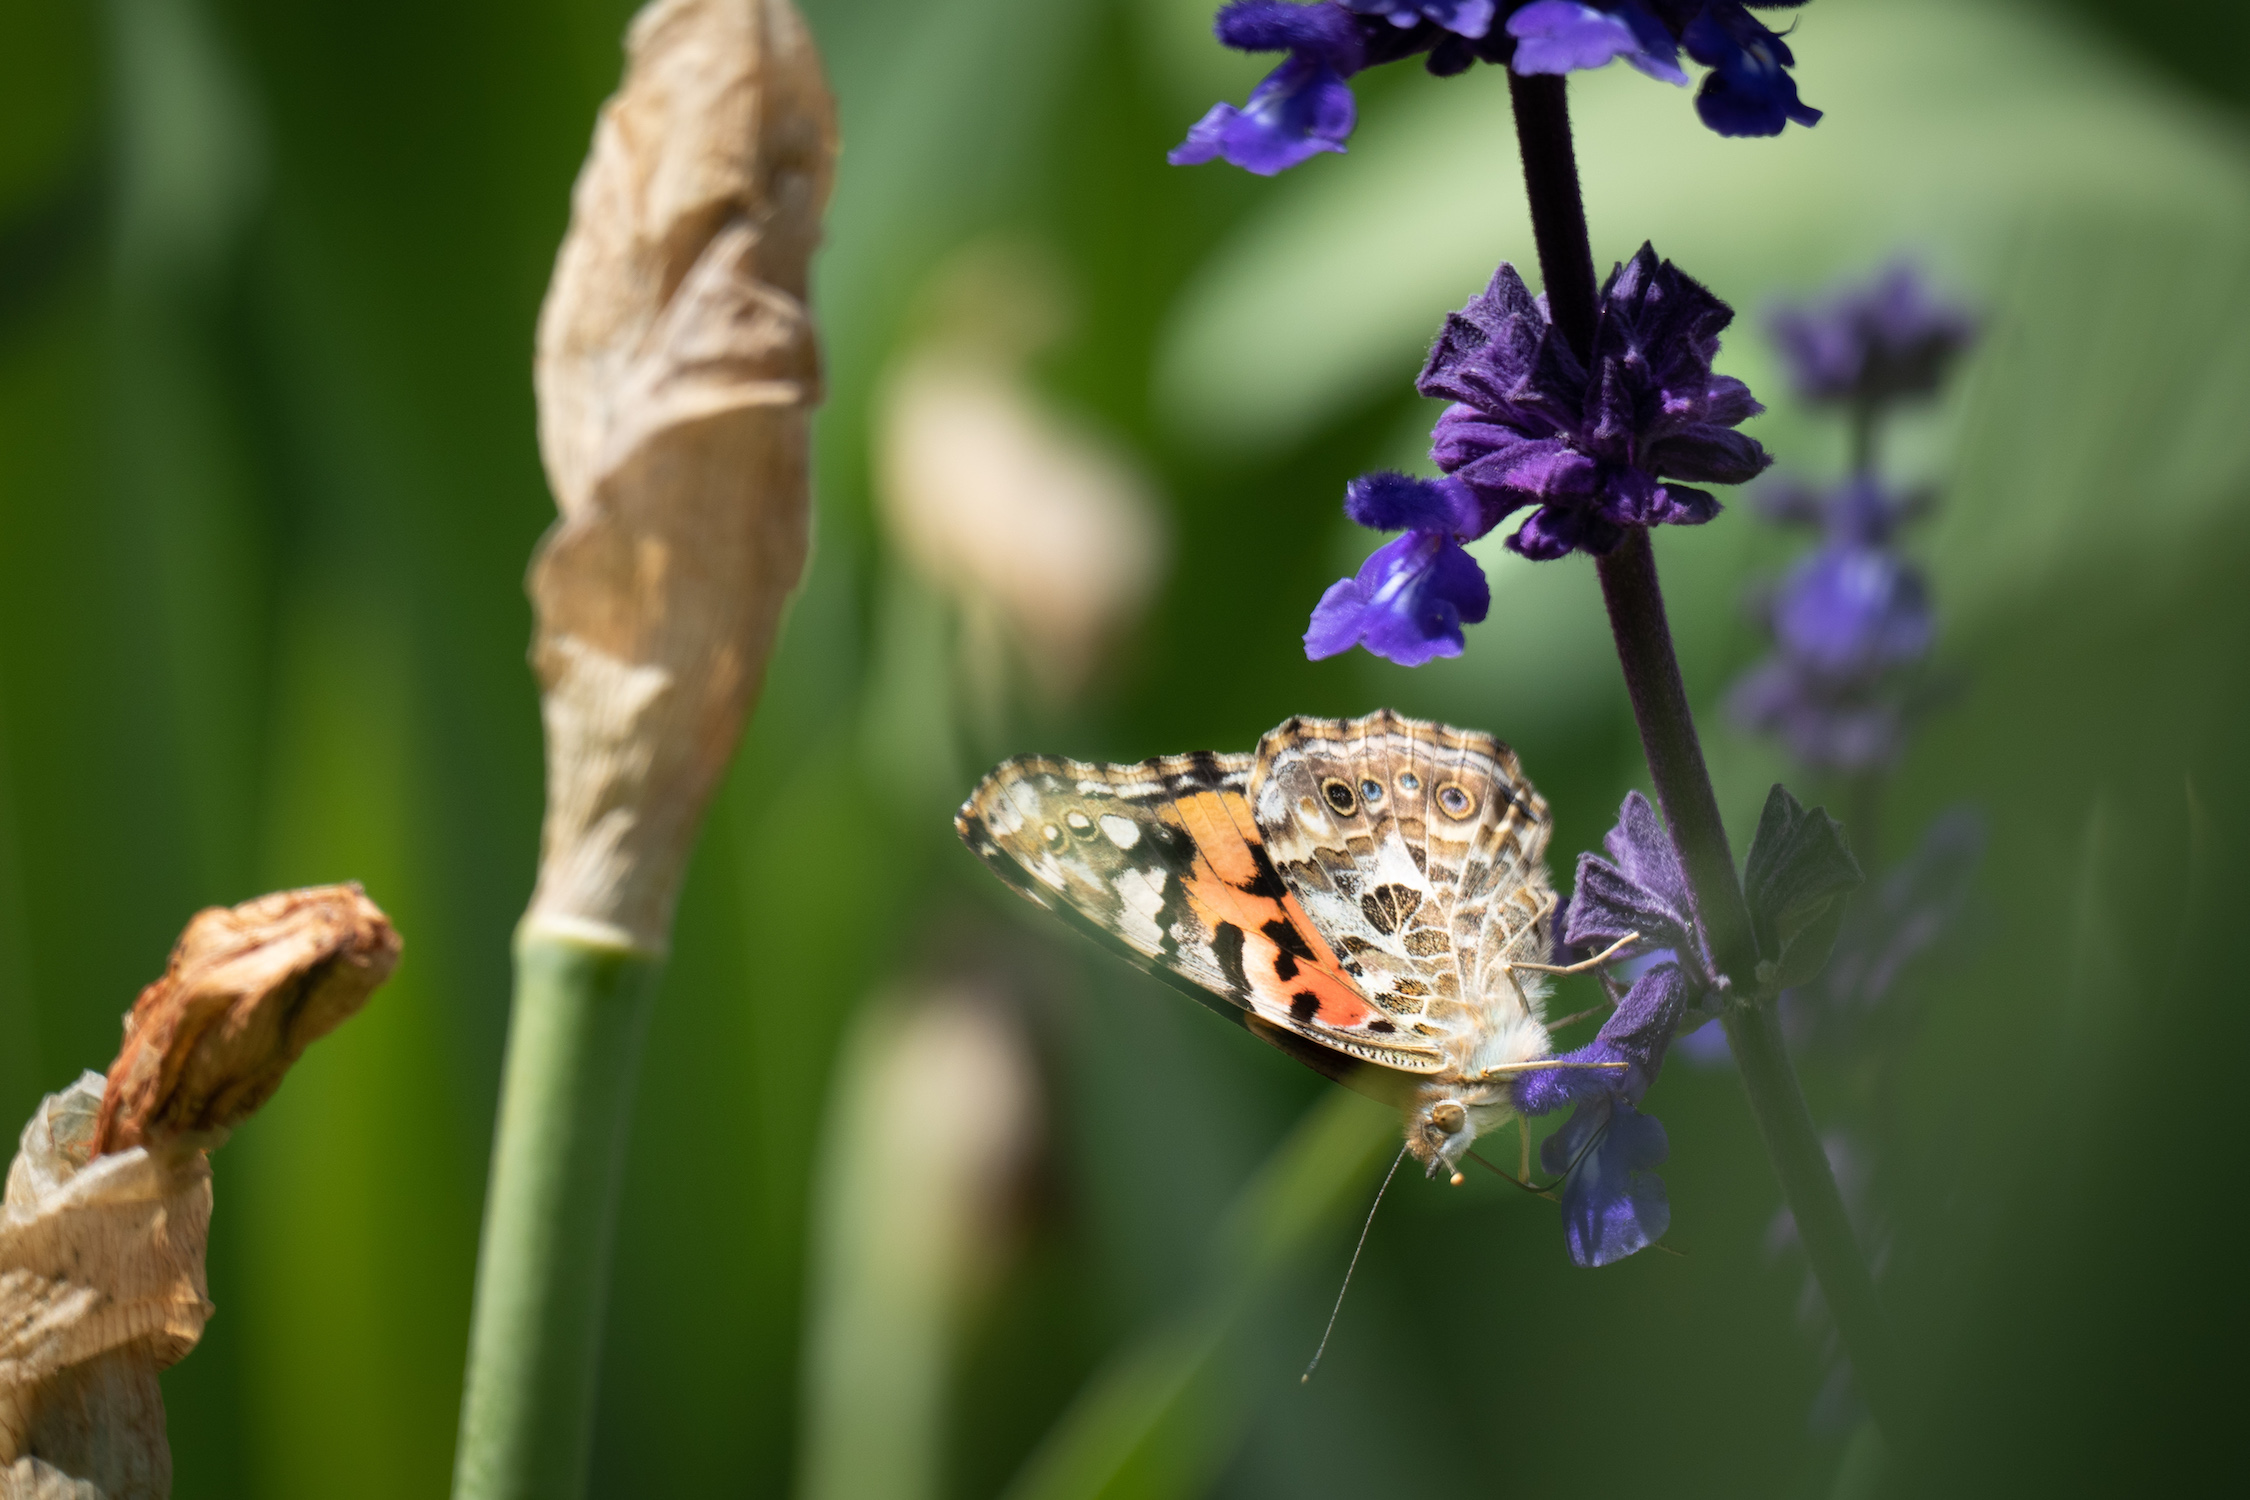 painted_lady_butterfly.jpg